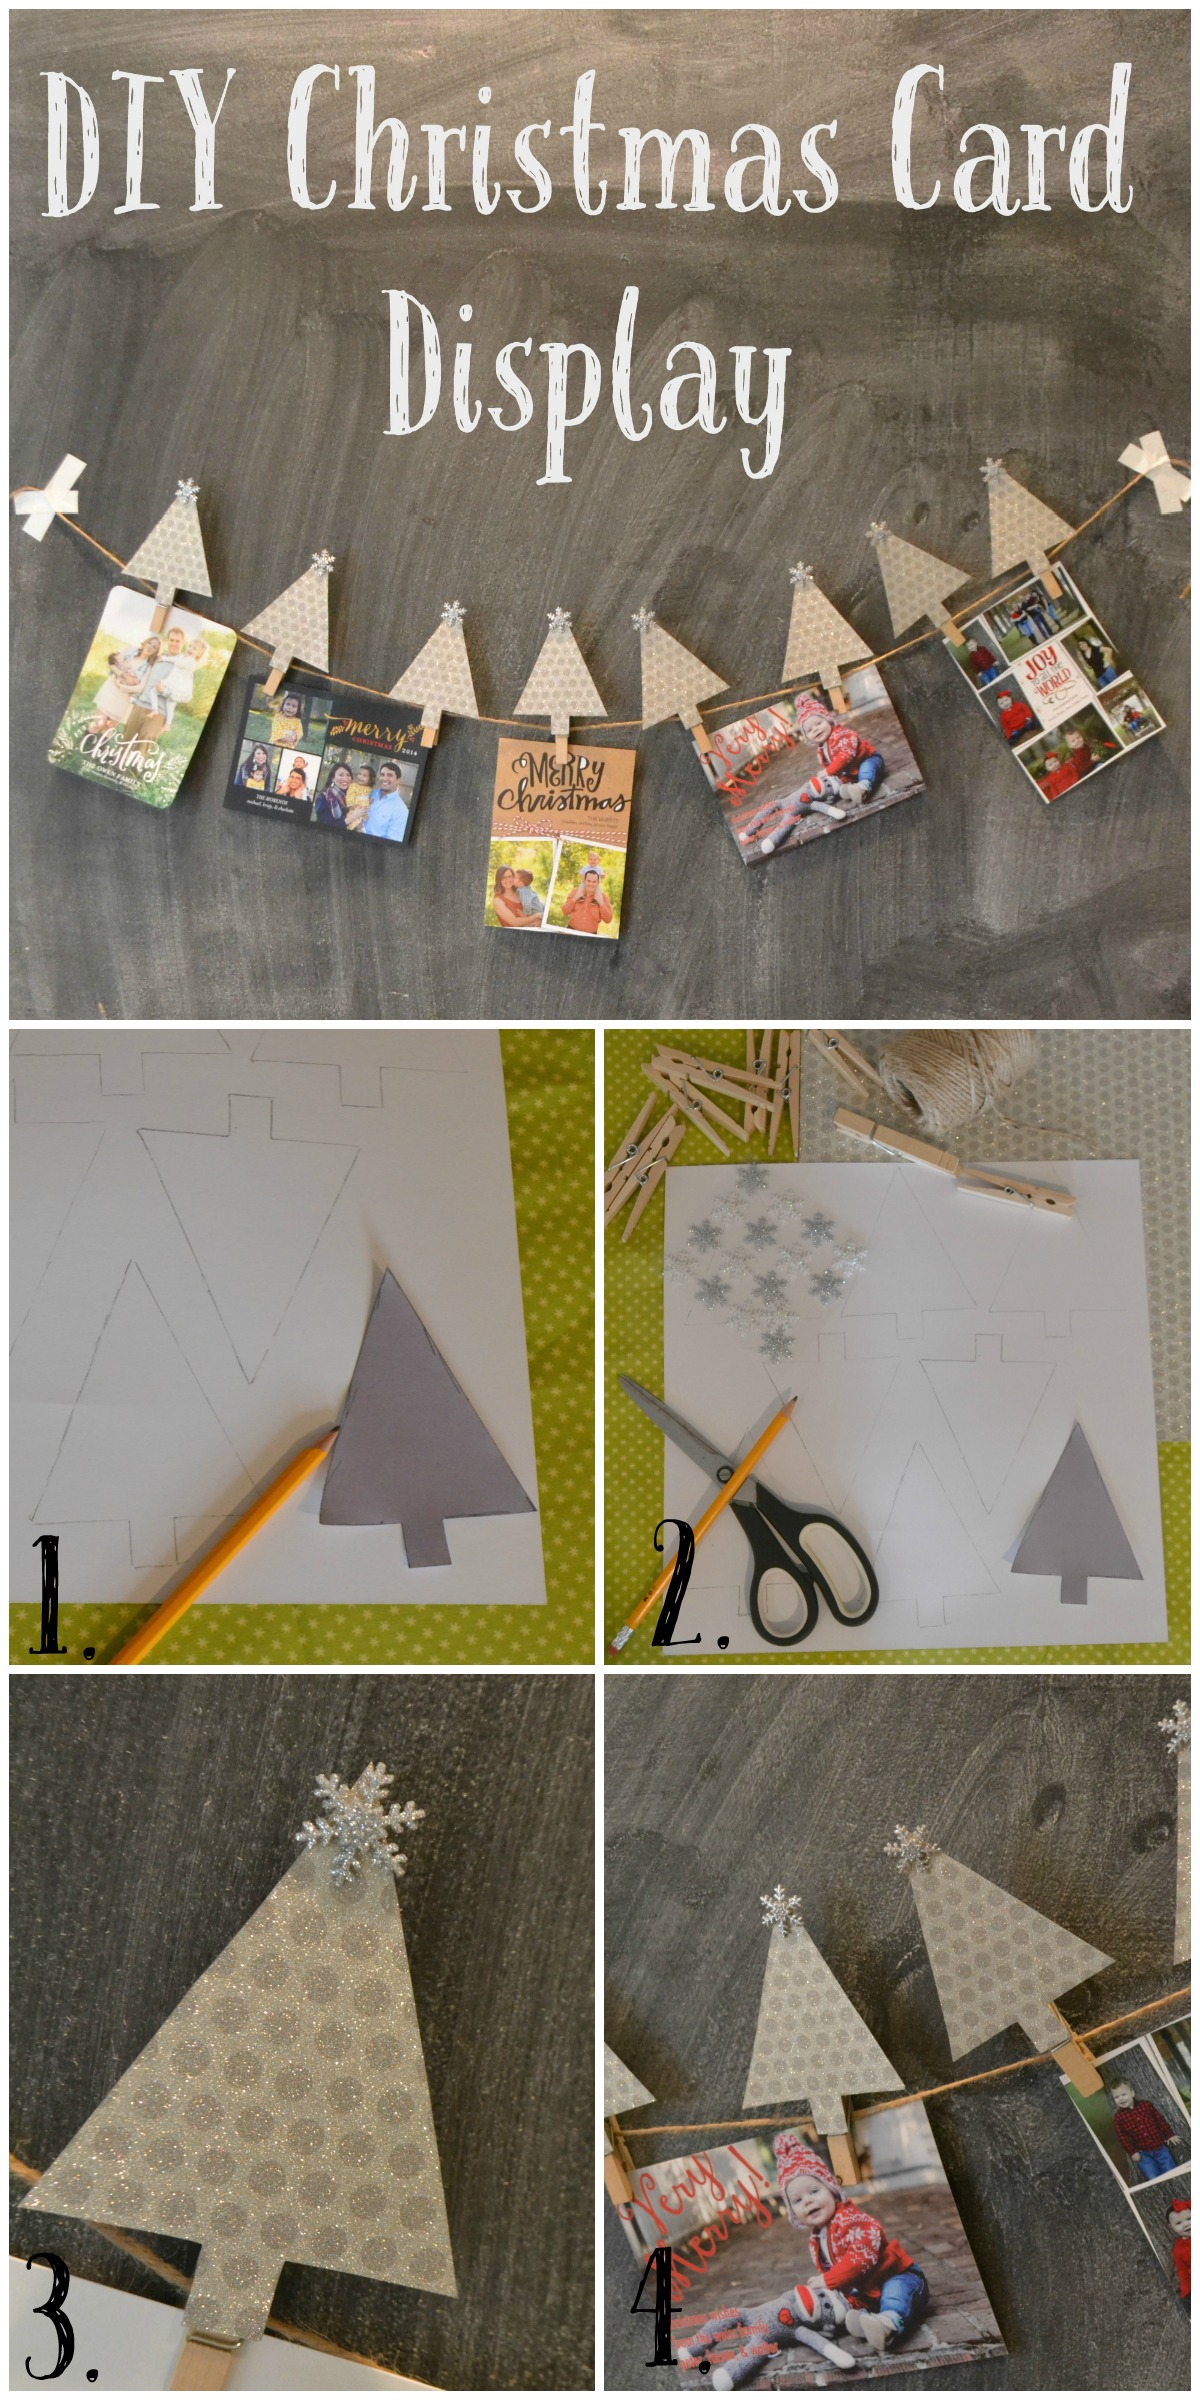 DIY Christmas Card Display and Holder Steps